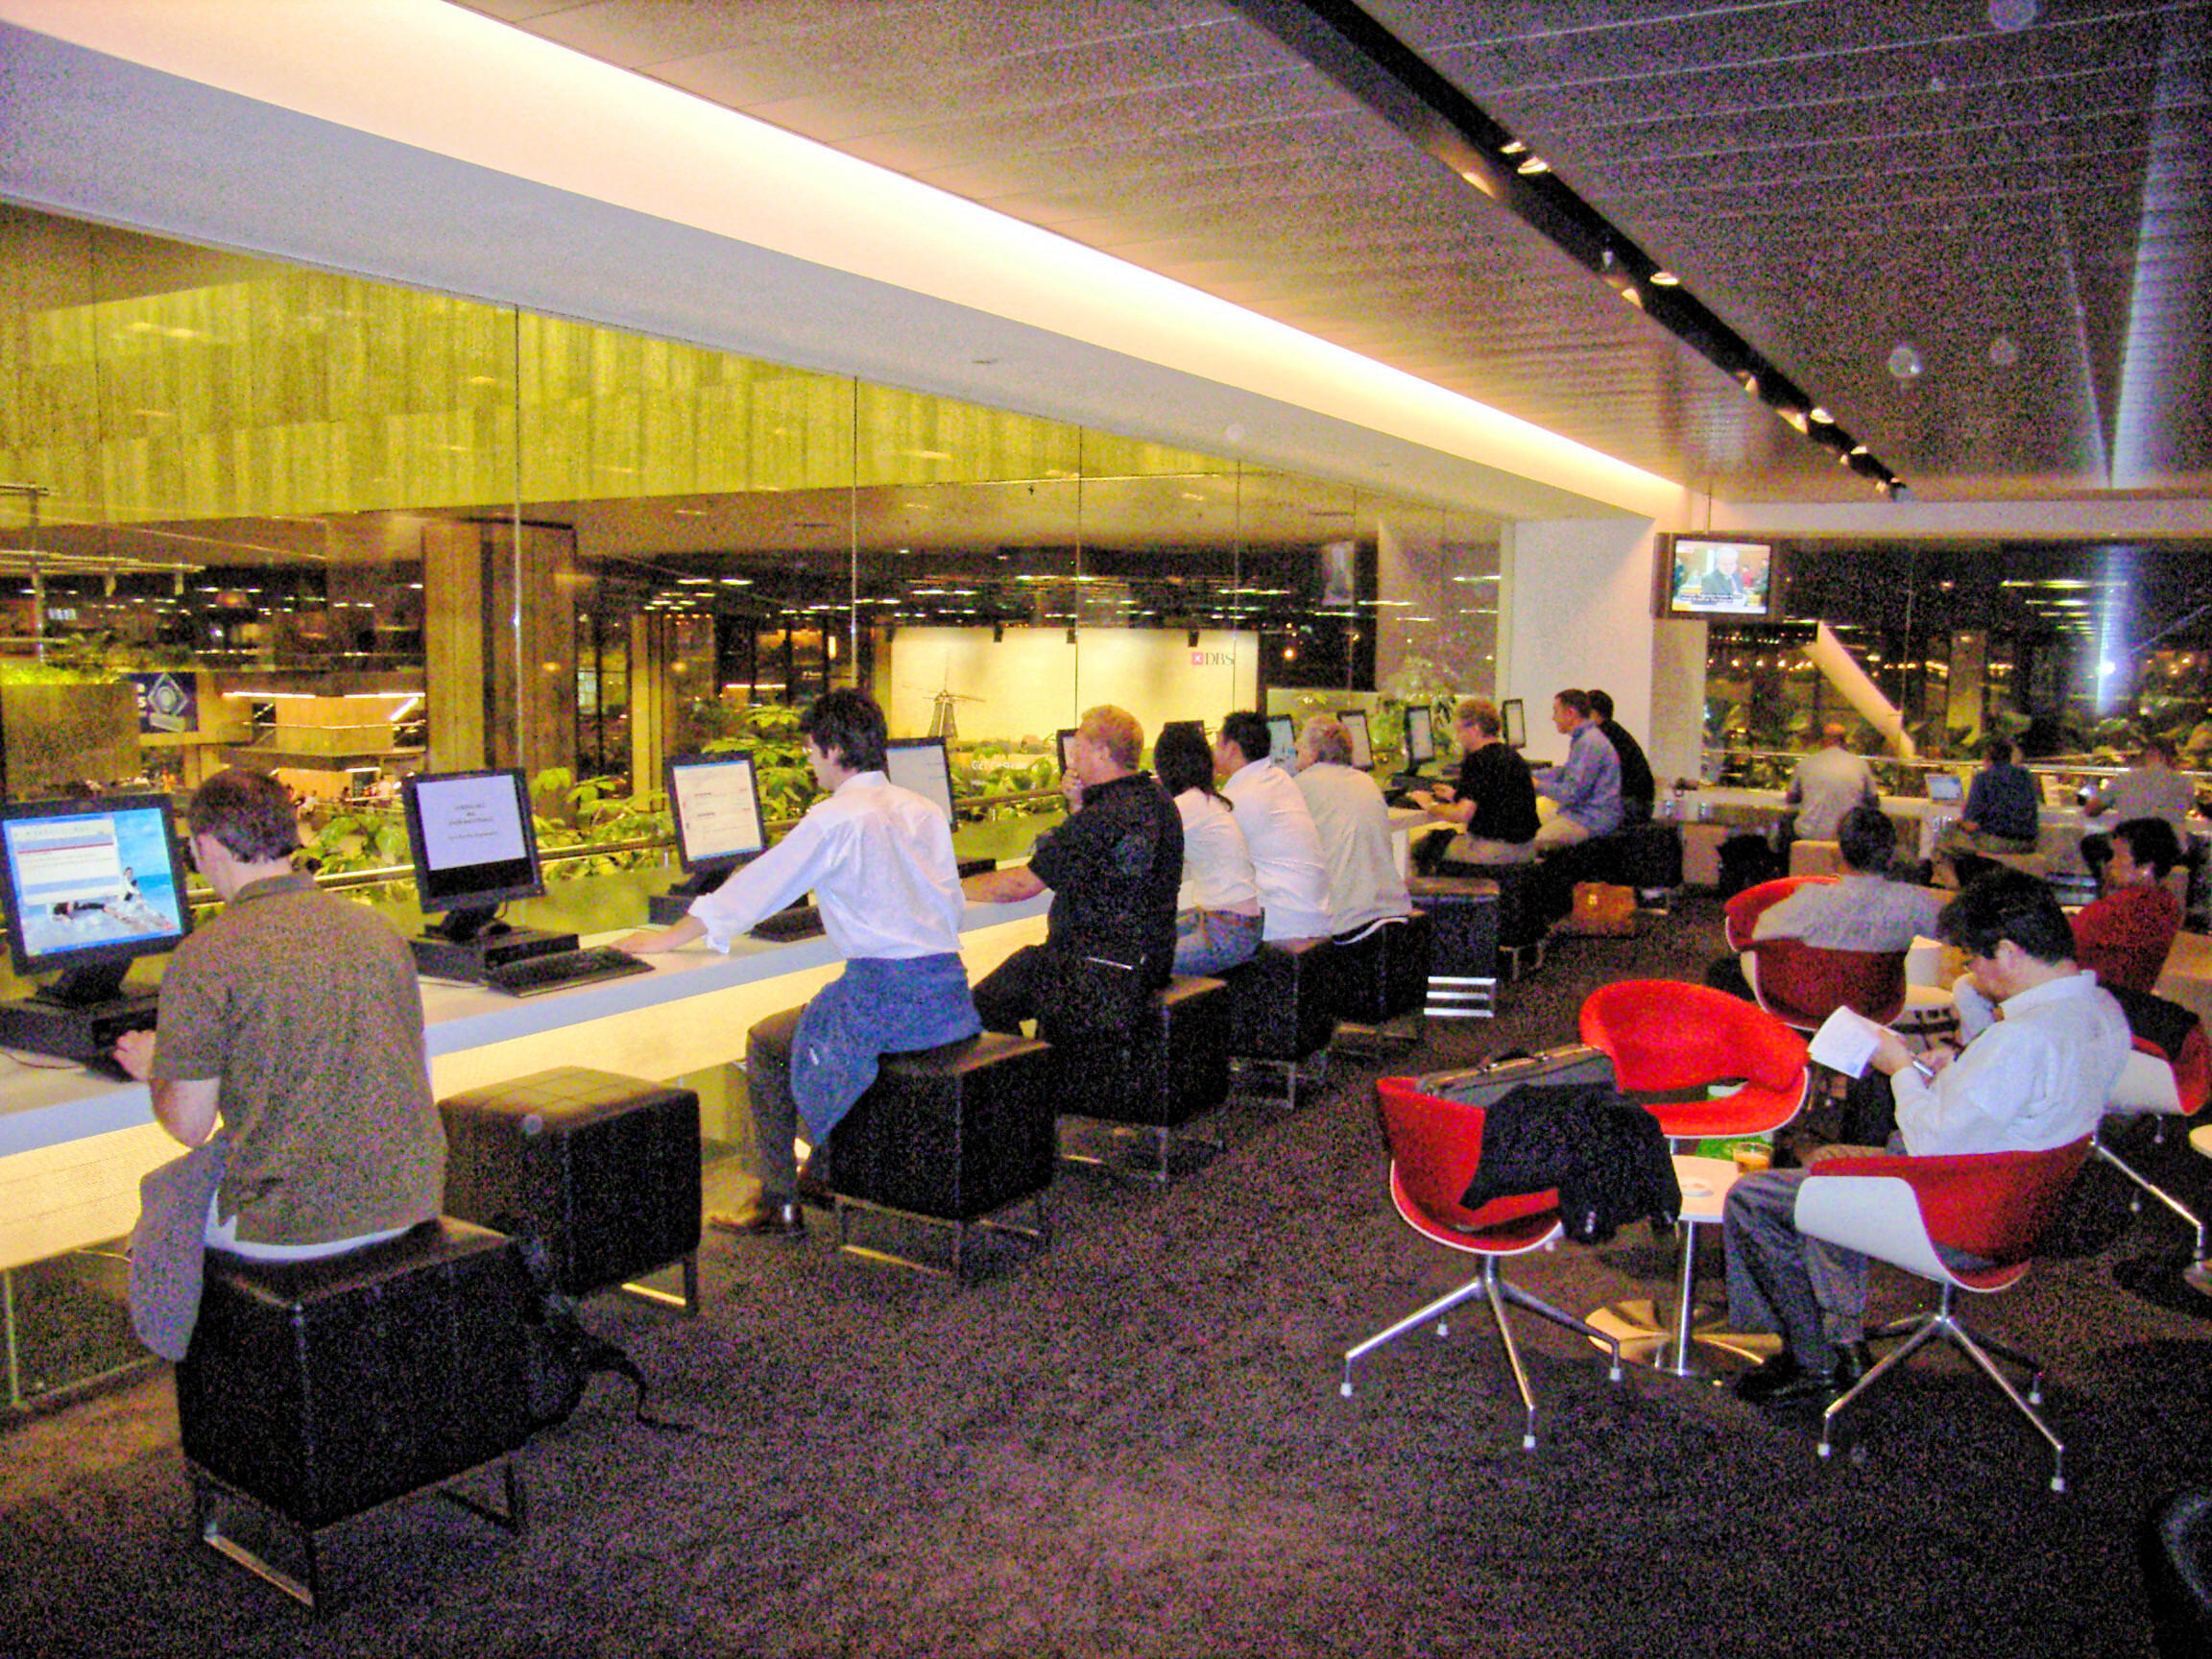 Qantas-club-Singapore-1.jpeg